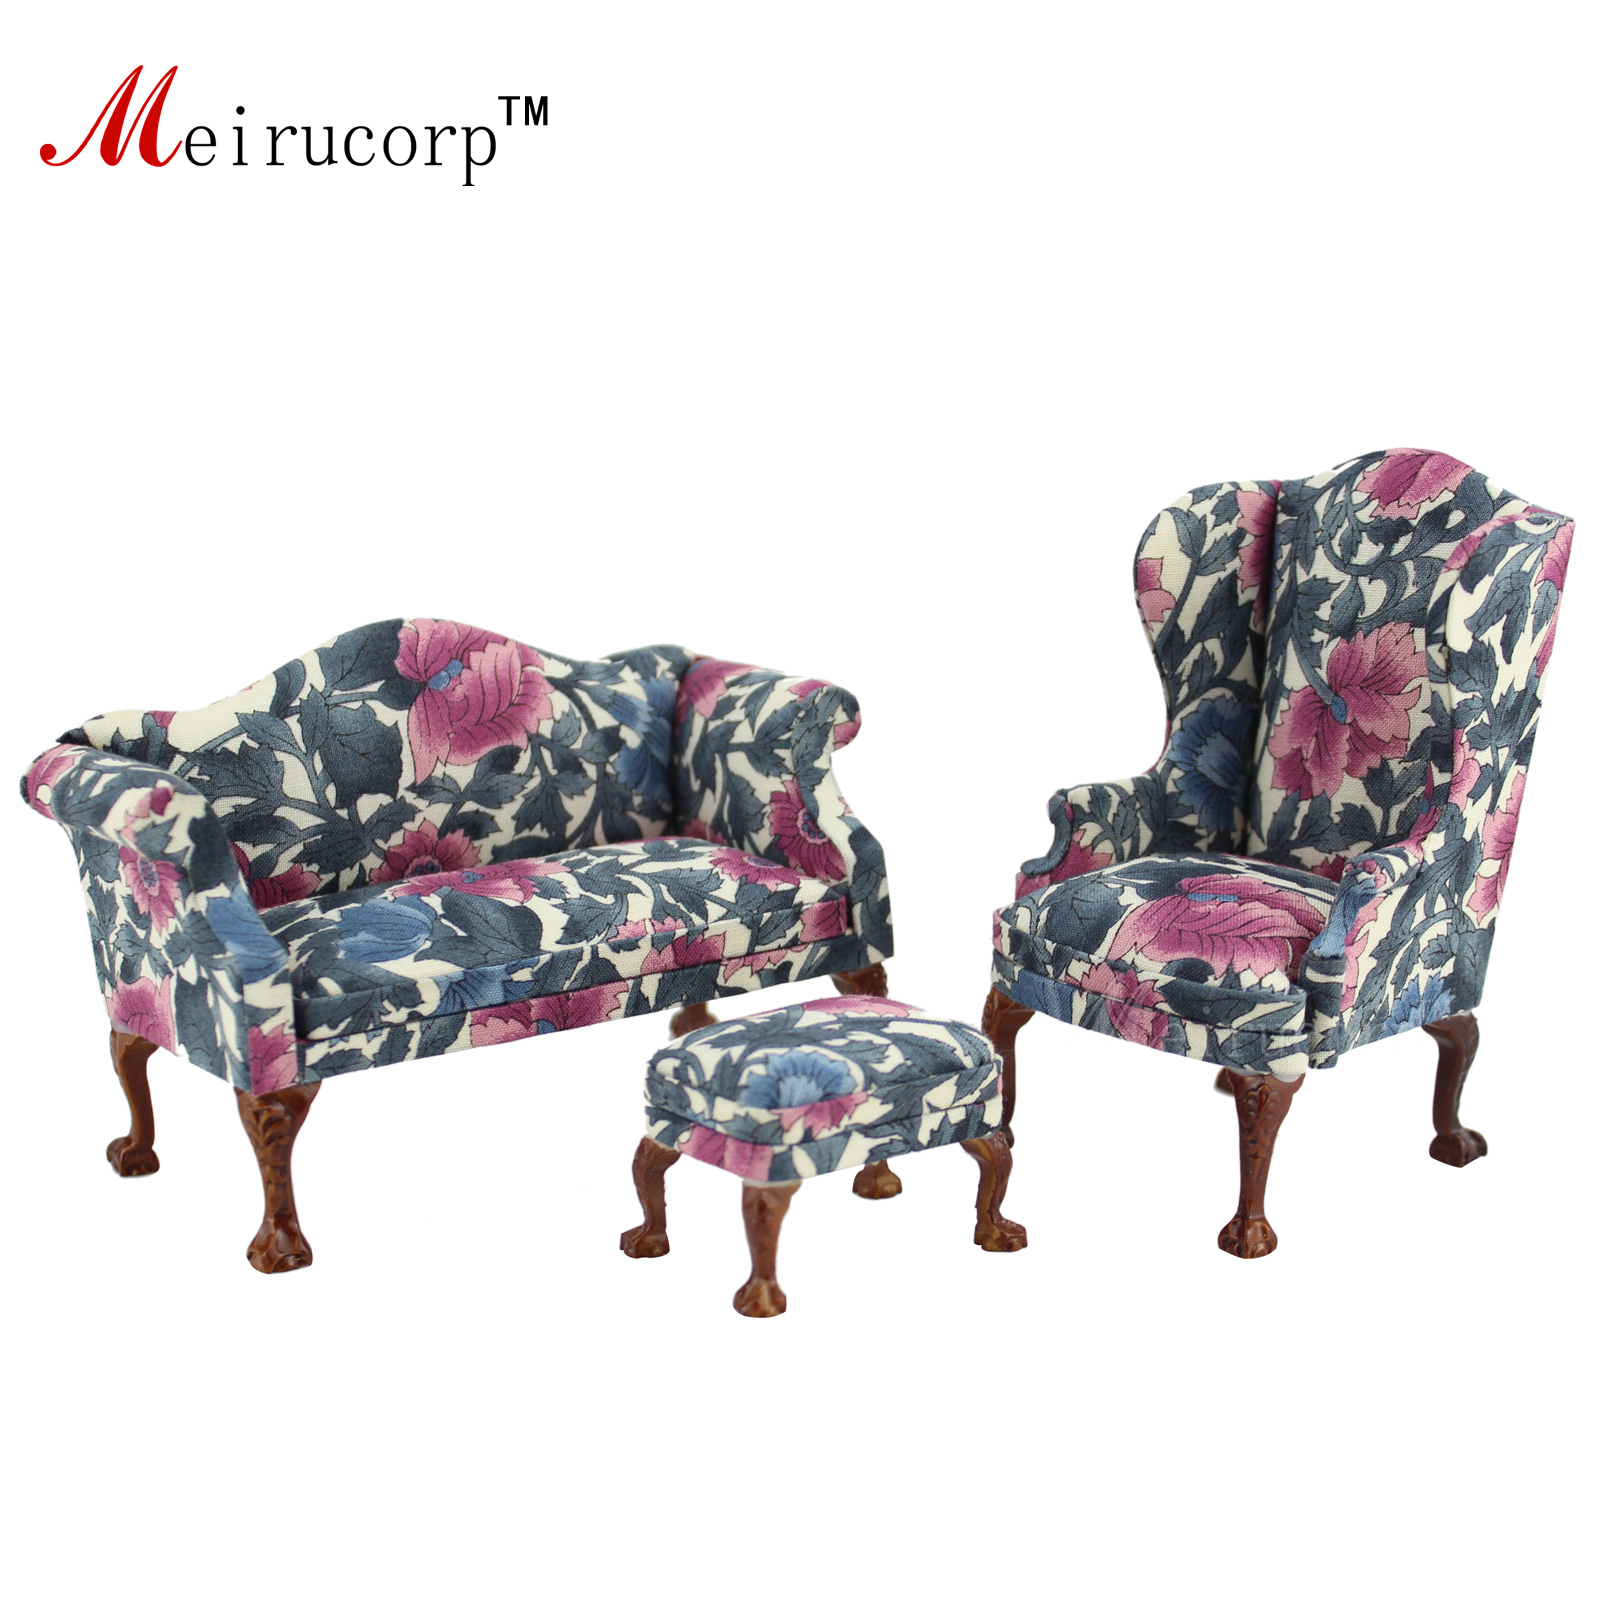 Dollhouse 1 12 scale Miniature furniture Petal pattern Living room chair and sofa set